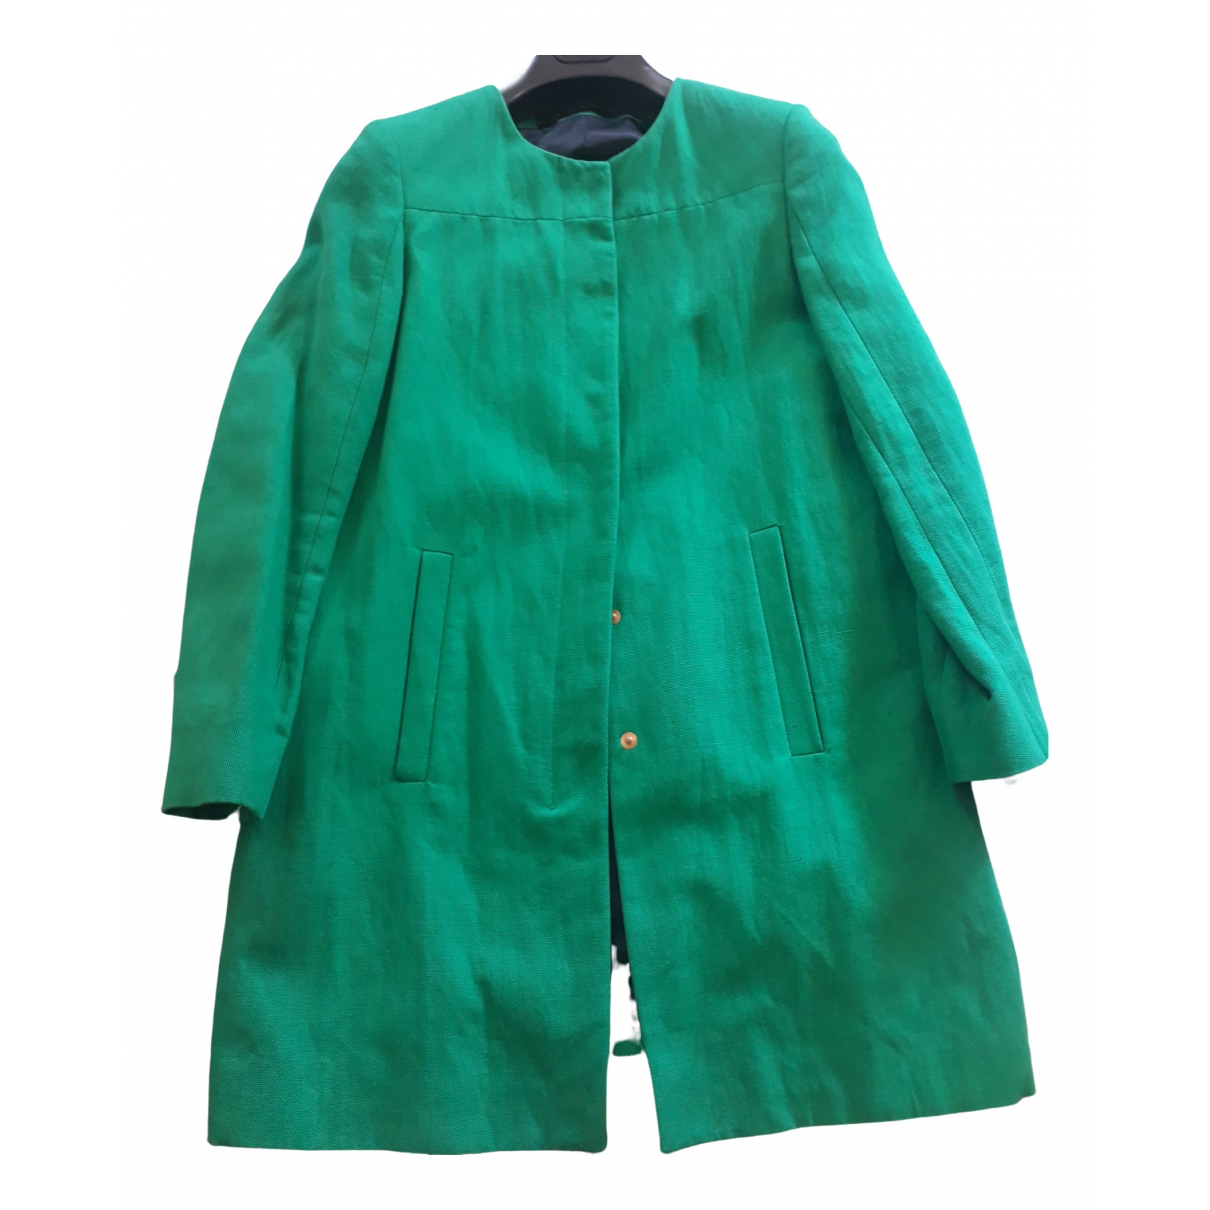 Zara \N Green Cotton jacket for Women 42 IT